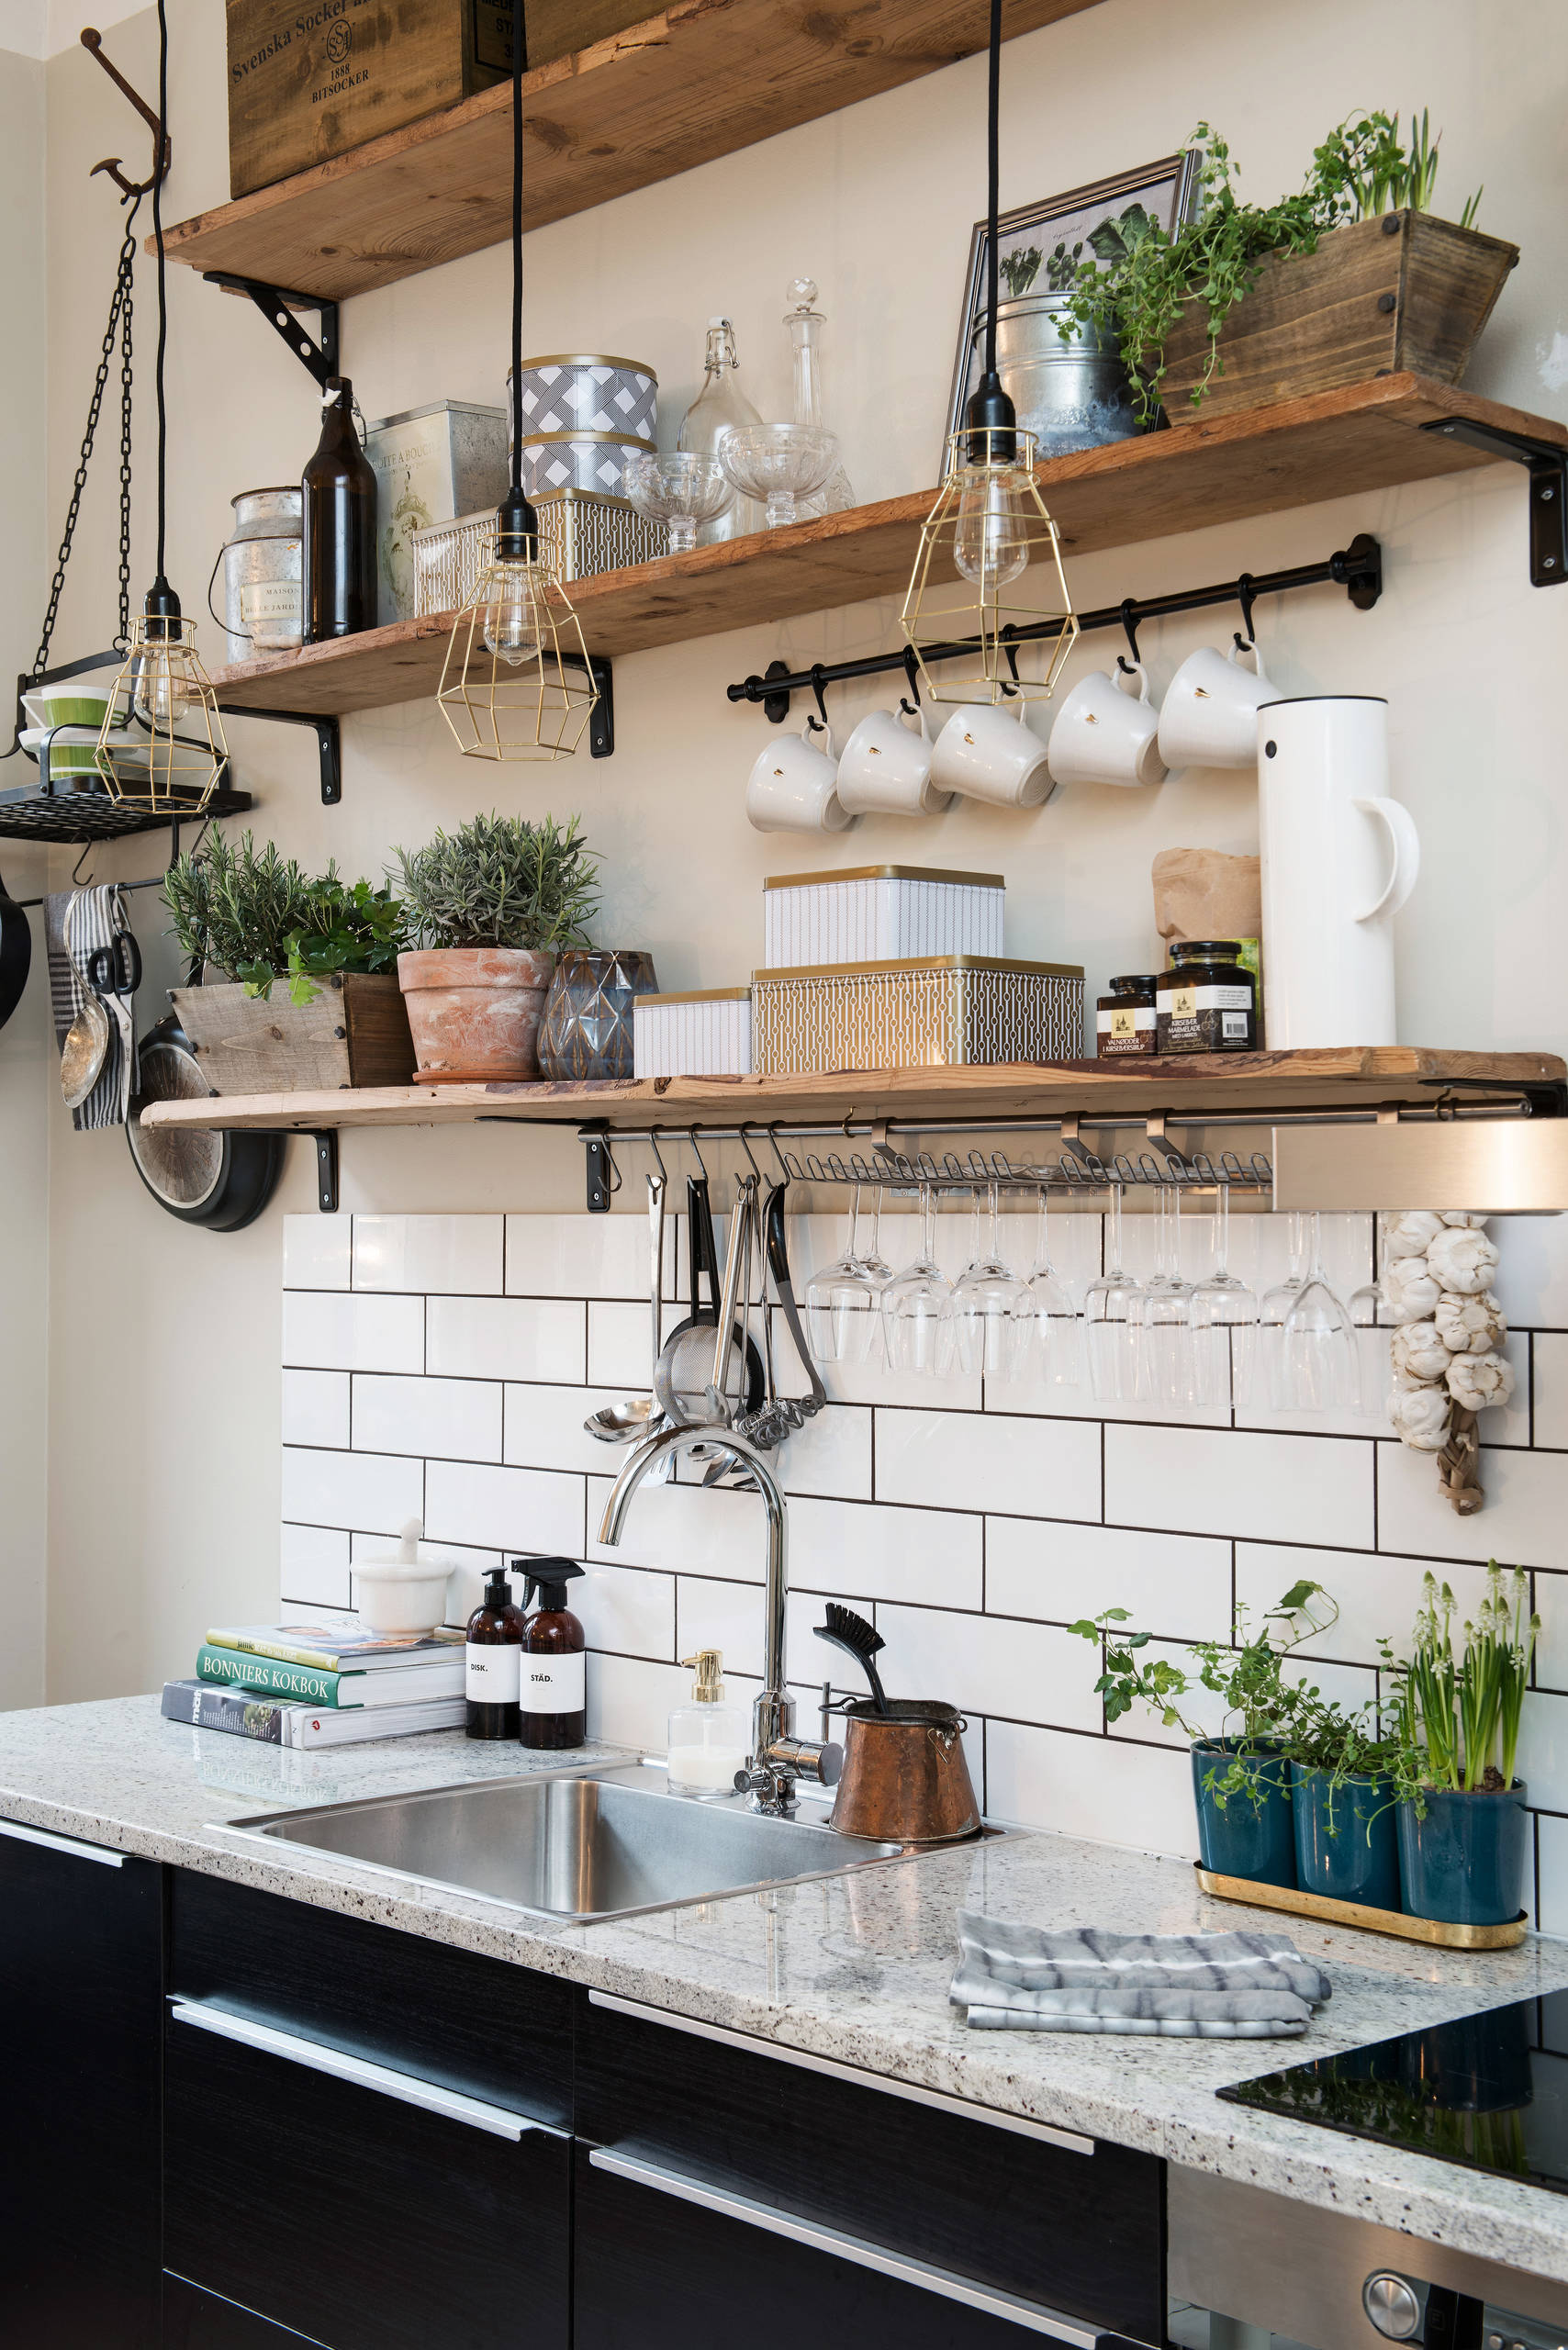 75 Beautiful Small Rustic Kitchen Pictures Ideas November 2020 Houzz